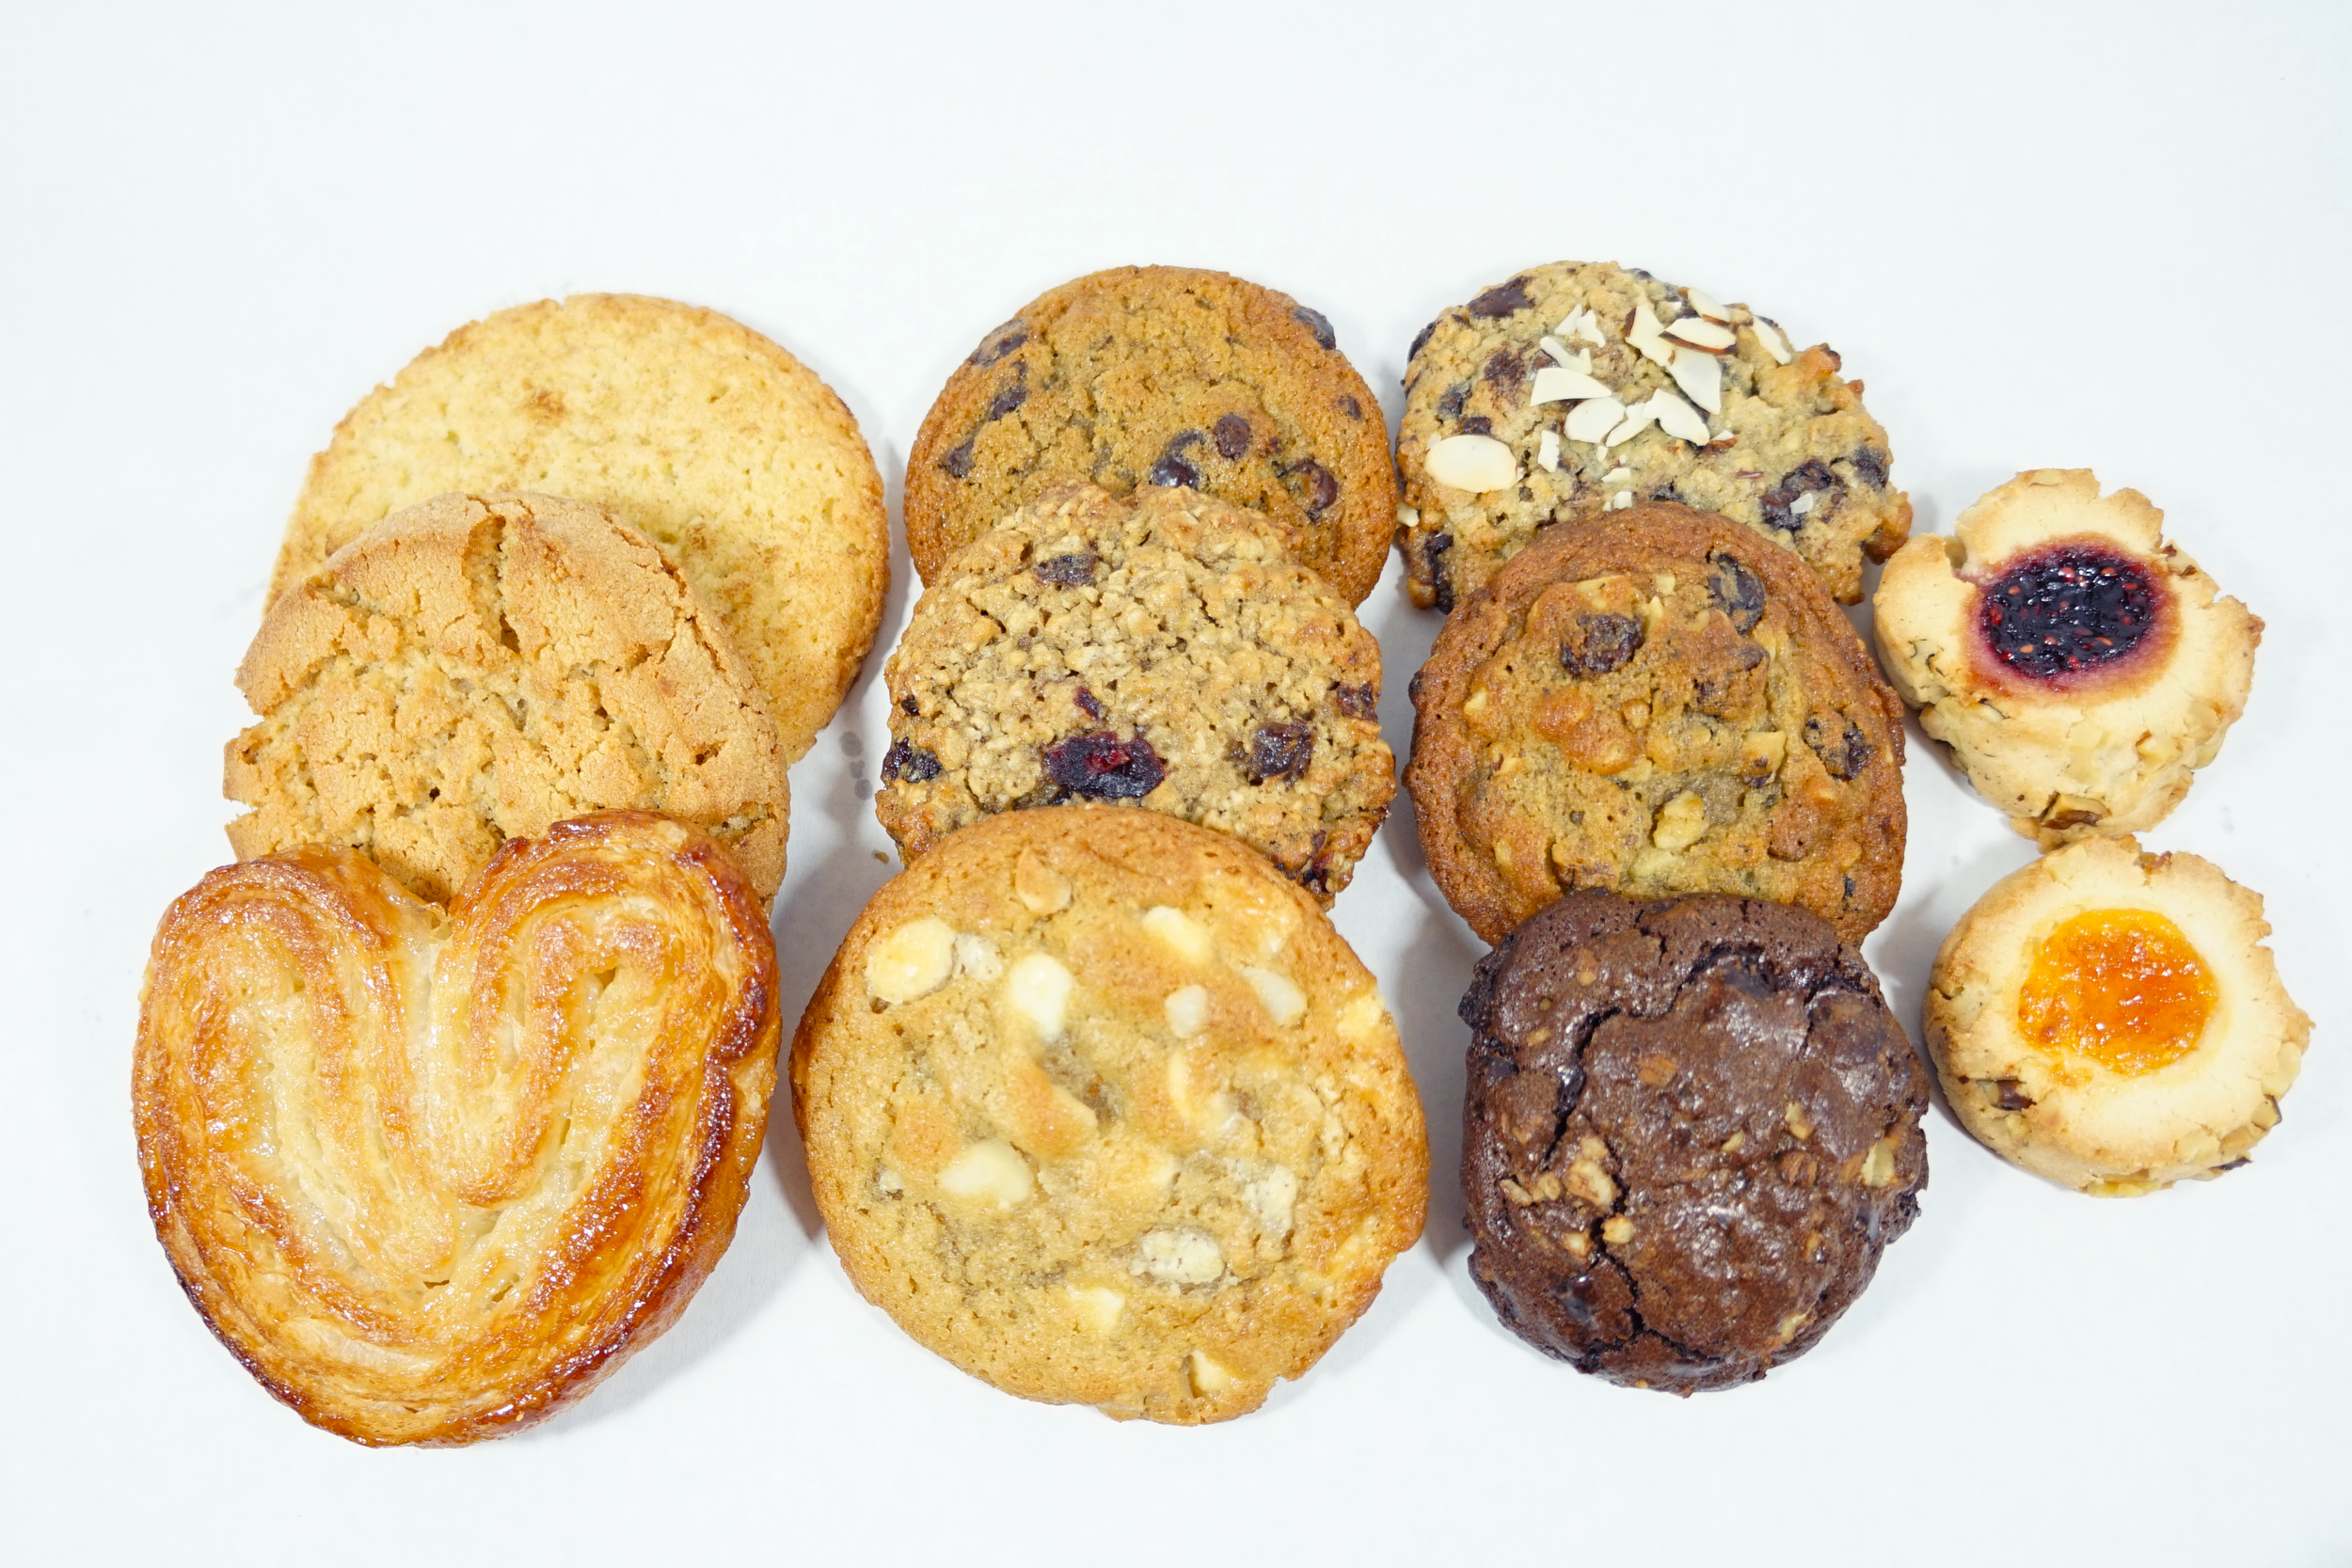 Cookies - White Chocolate Macadamia, Chocolate Chip, Double Chocolate with Walnuts, Raisin Walnut, Oatmeal Chocolate Chip, Cranberry Oatmeal, Snickerdoodle, Peanut Butter, Palmier, Thumbprint, or Pecan Sandie